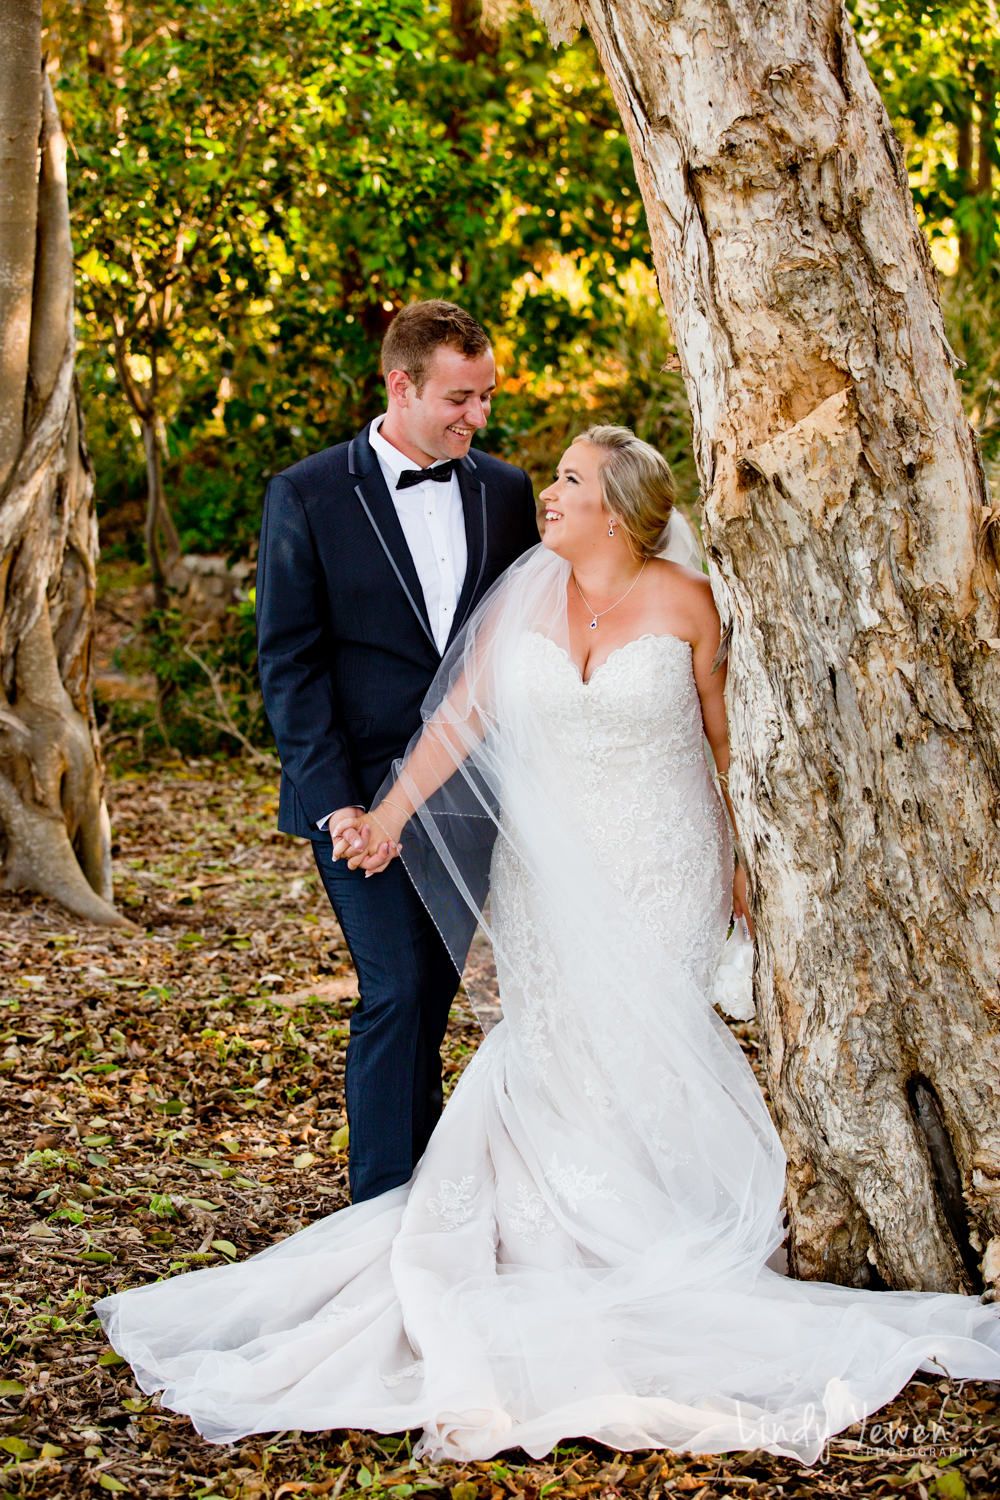 Bribie-Island-wedding-photographer-Chloe-Adam 424.jpg